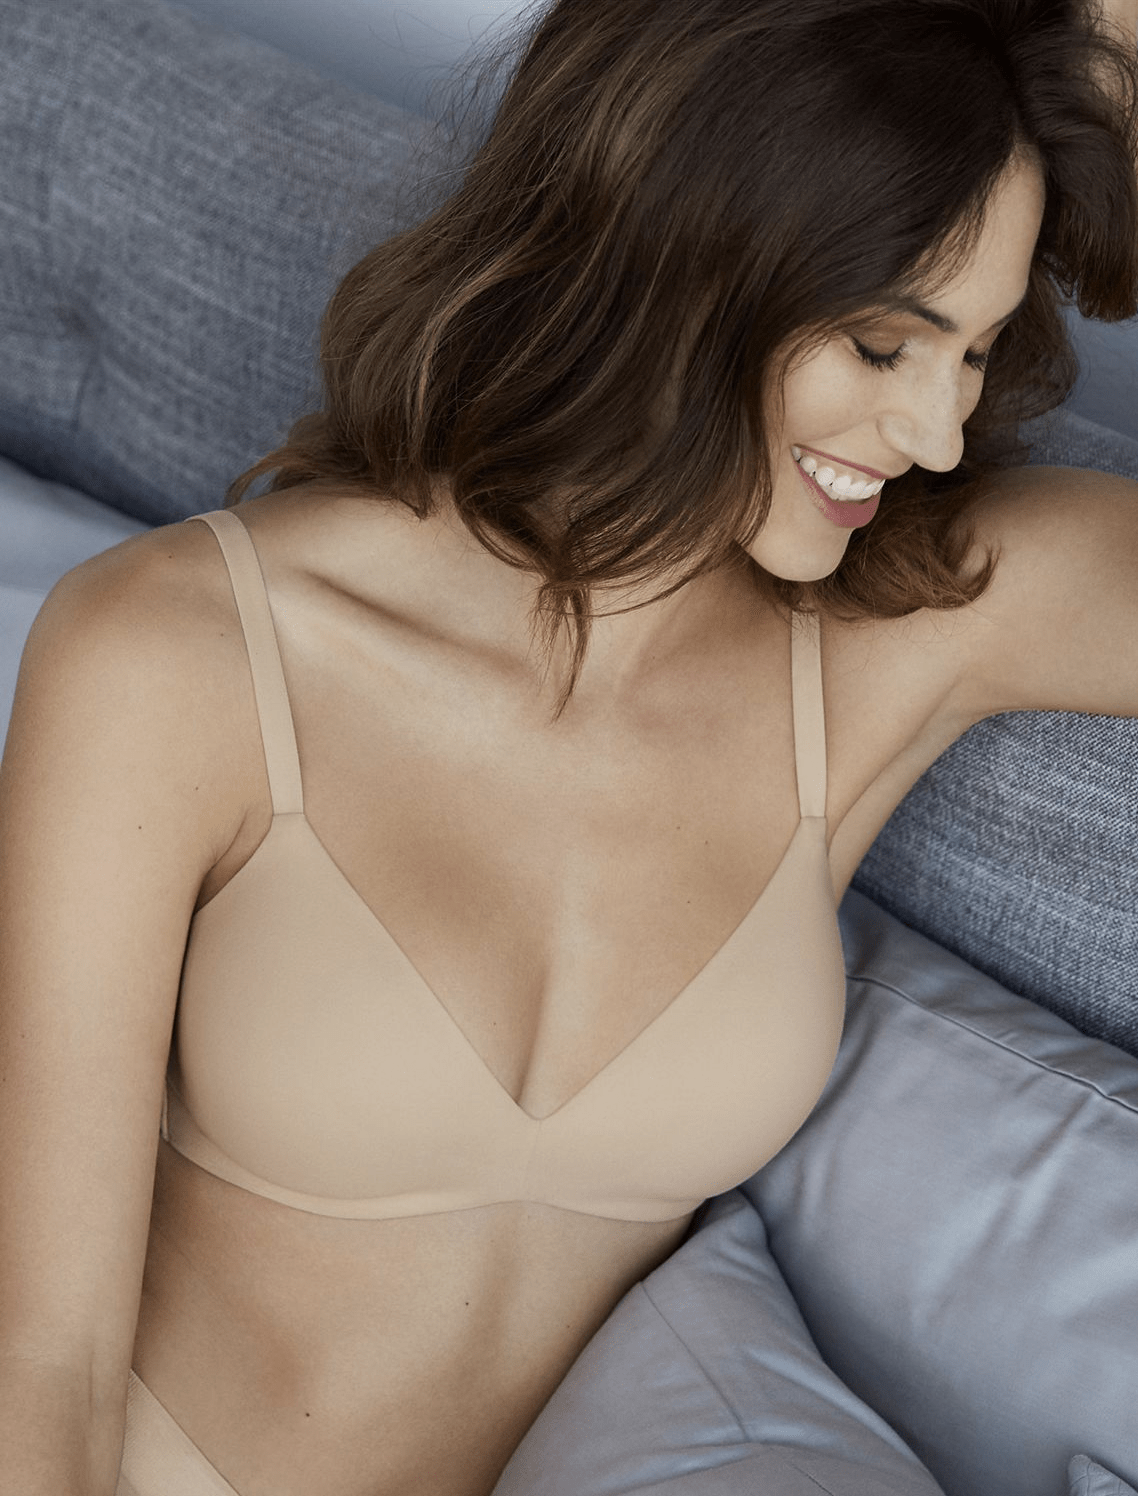 Wacoal How Perfect Wire-Free Bra 852189 Bras Sand / A / 34 Wacoal